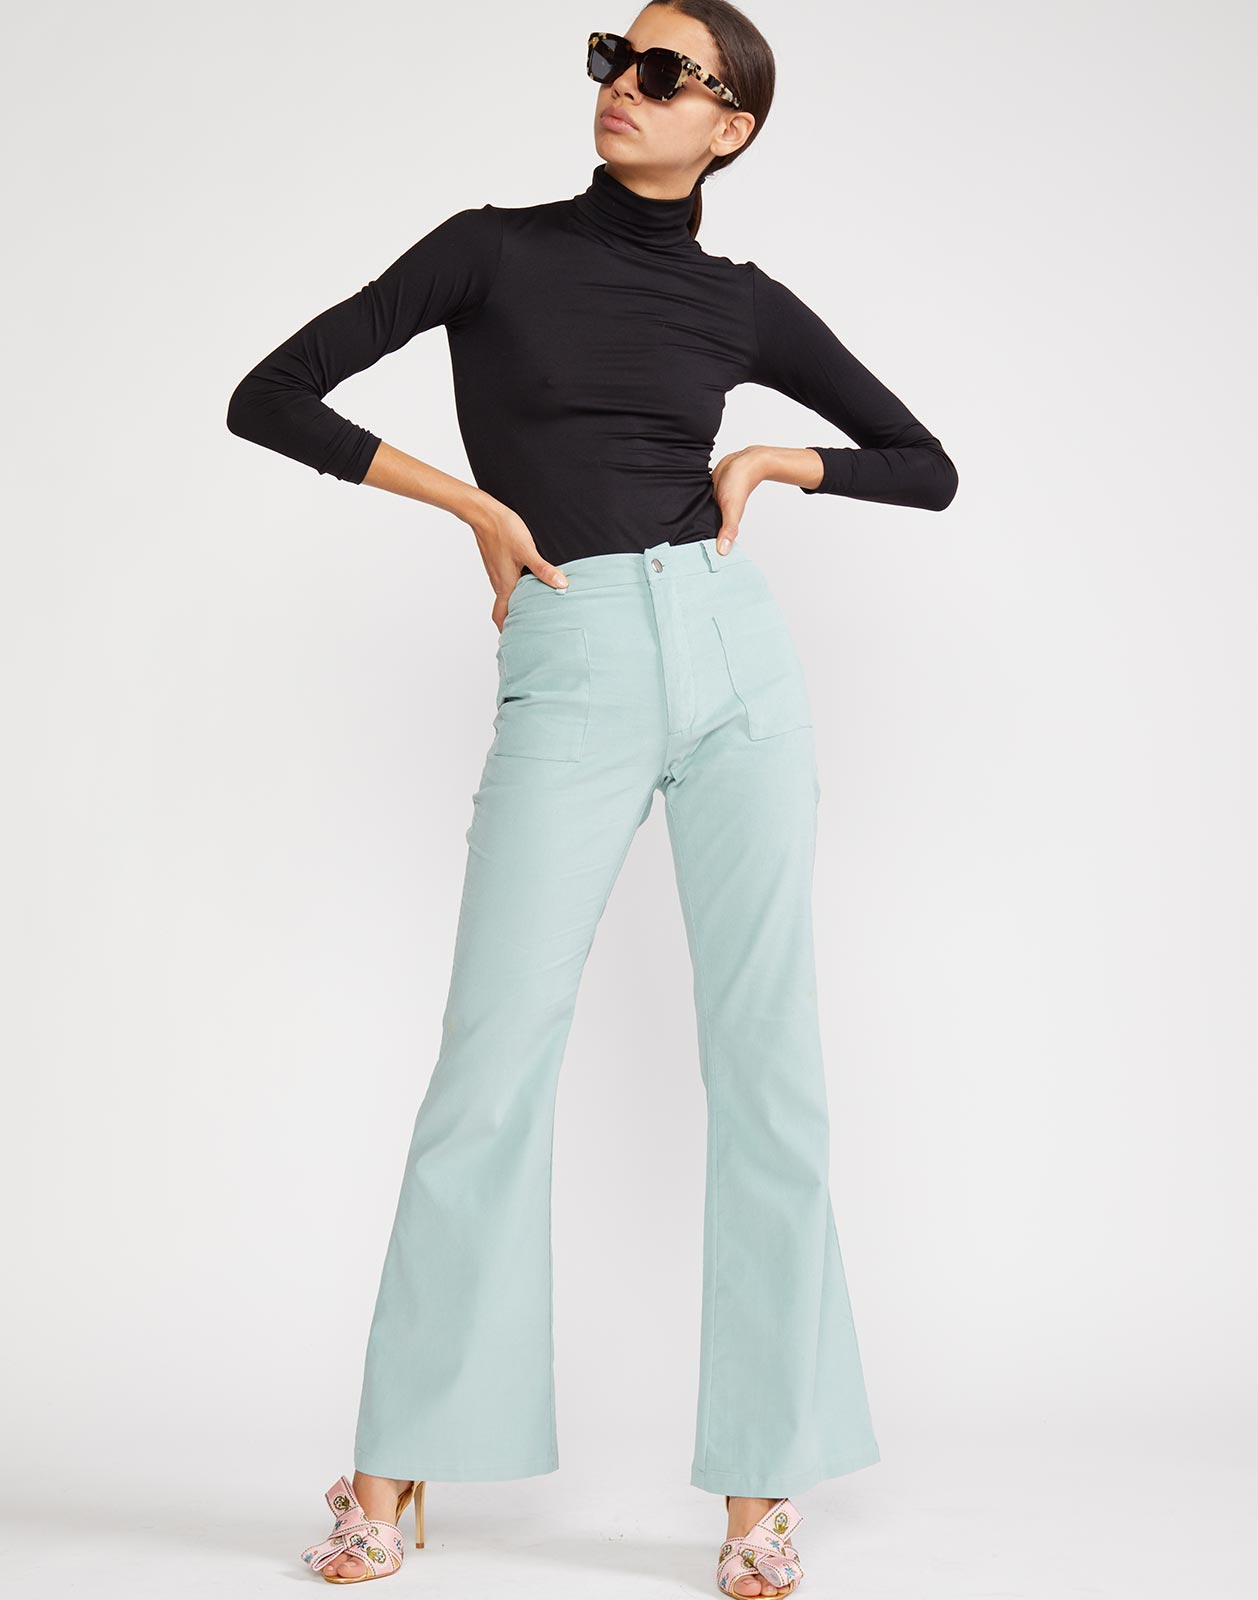 Alternate view of Blake Corduroy Pant in blue